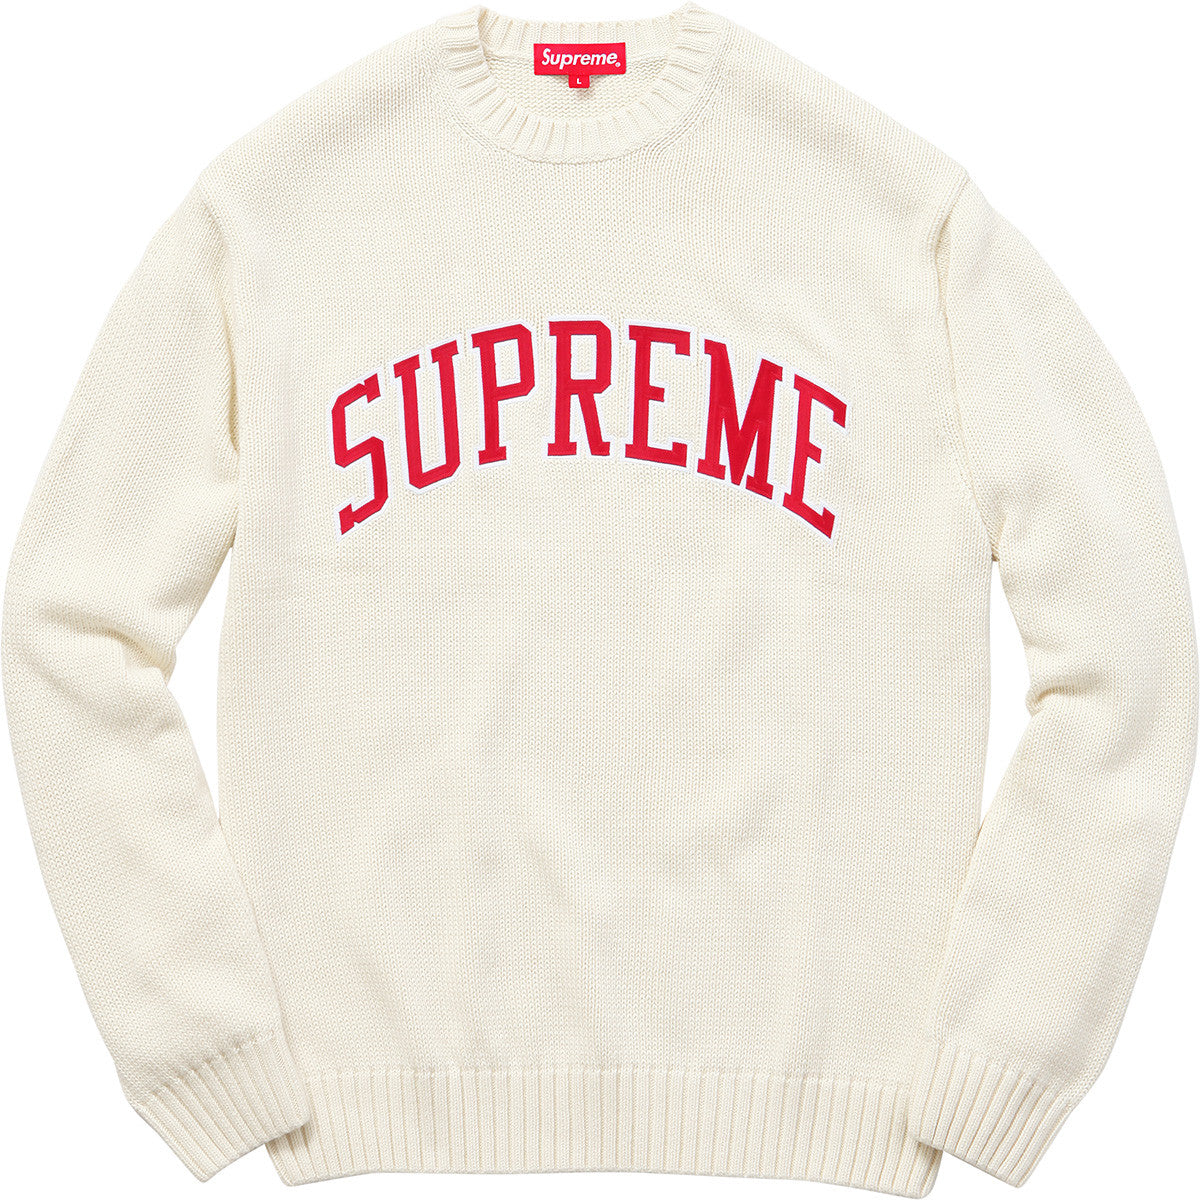 *new* Supreme Tackle Twill Sweater - Medium DS